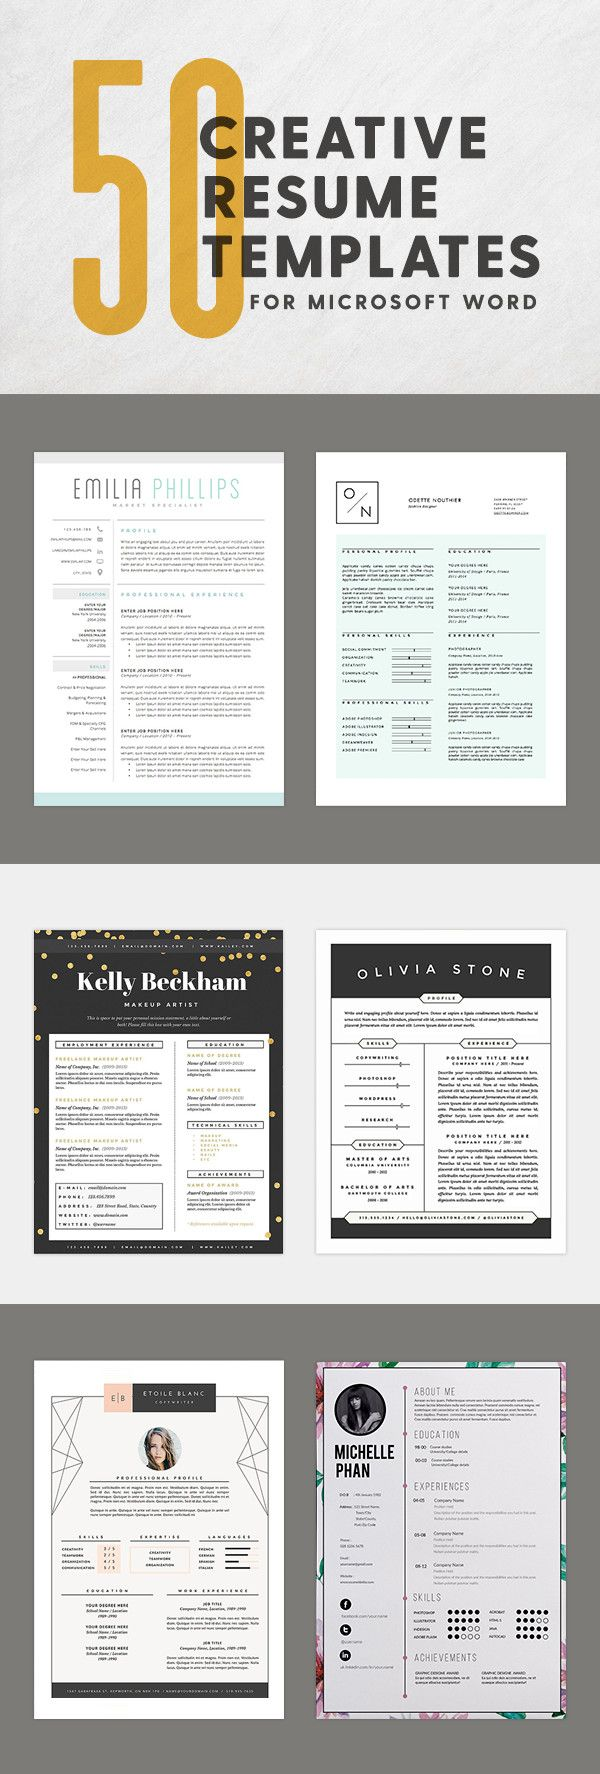 50 Creative Resume Templates You Wonu0027t Believe Are Microsoft Word  Fonts For A Resume